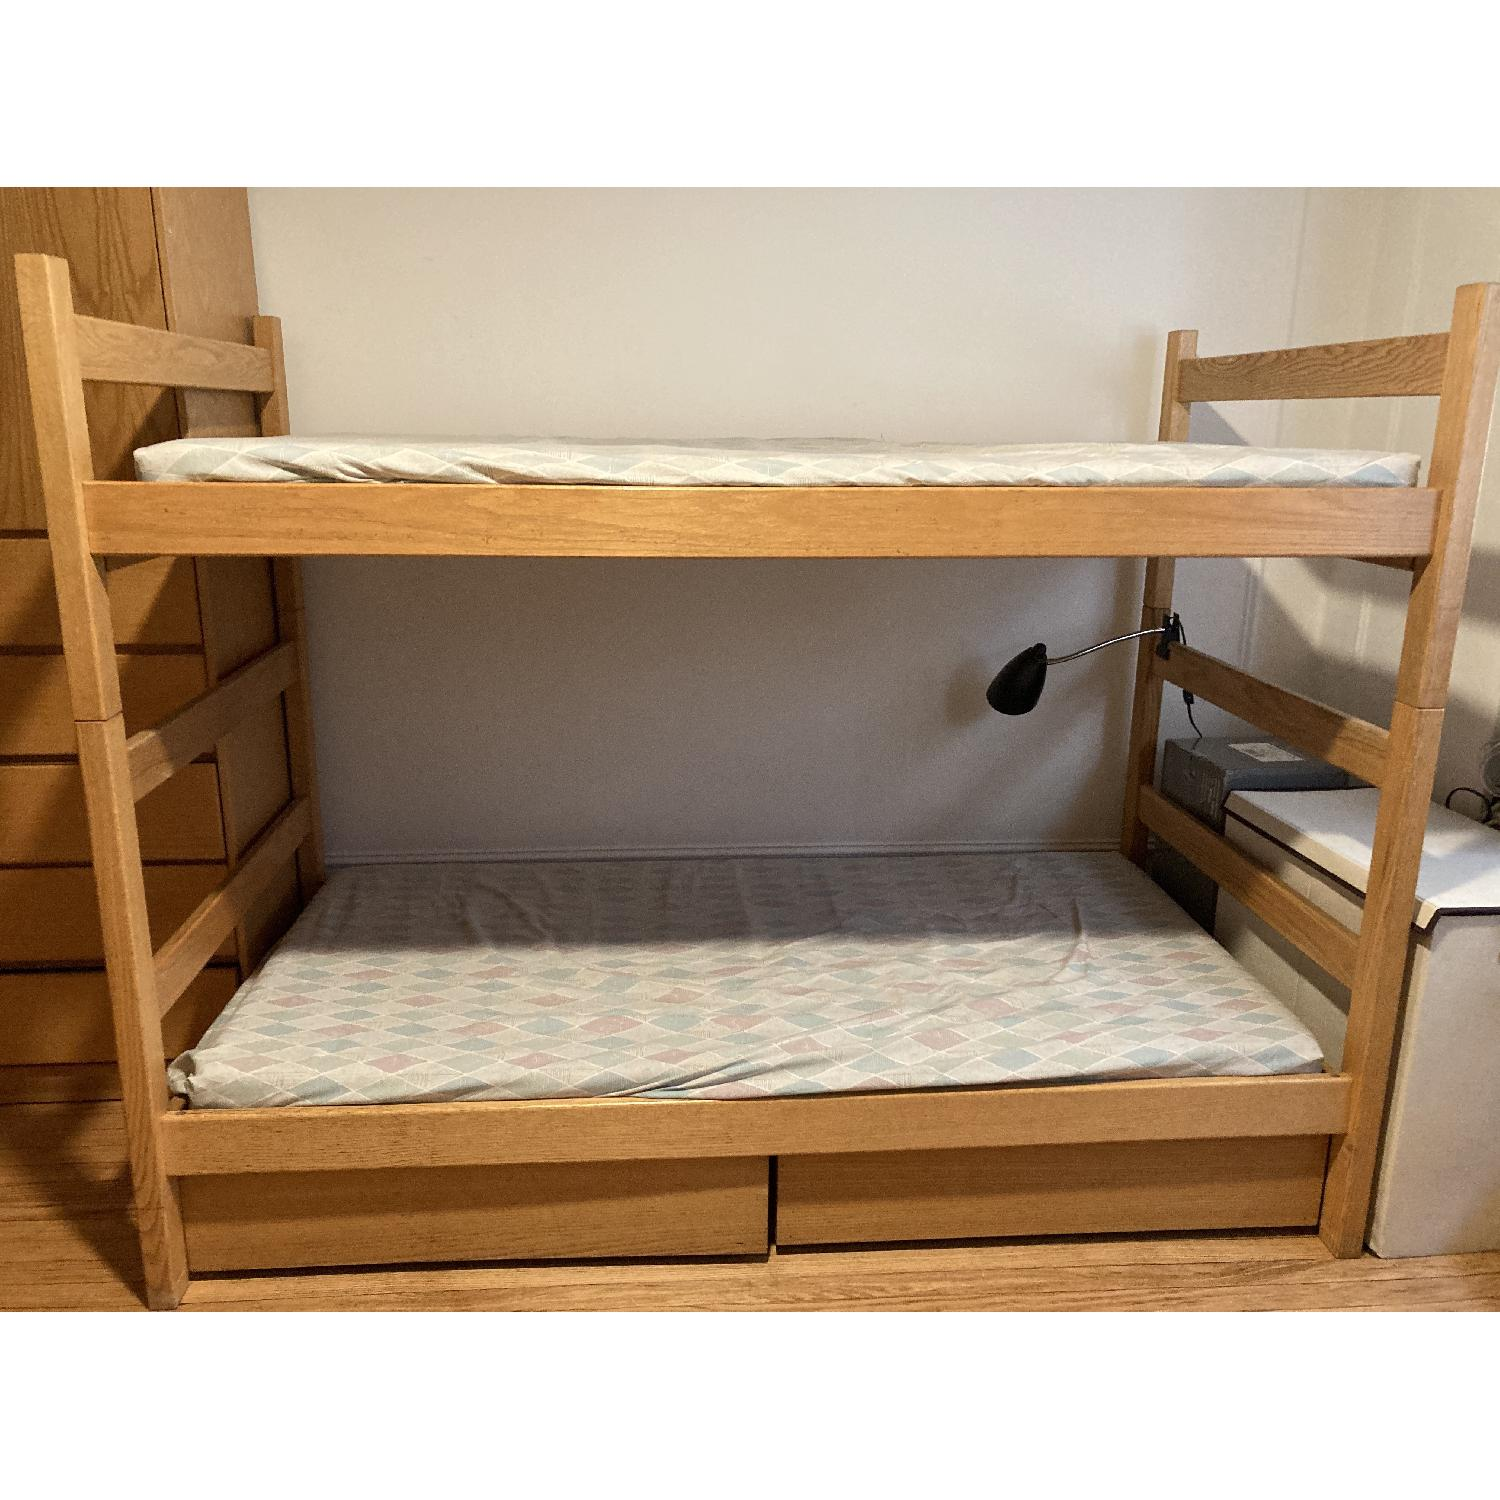 Pottery Barn Solid Wood Bunk Beds - image-0